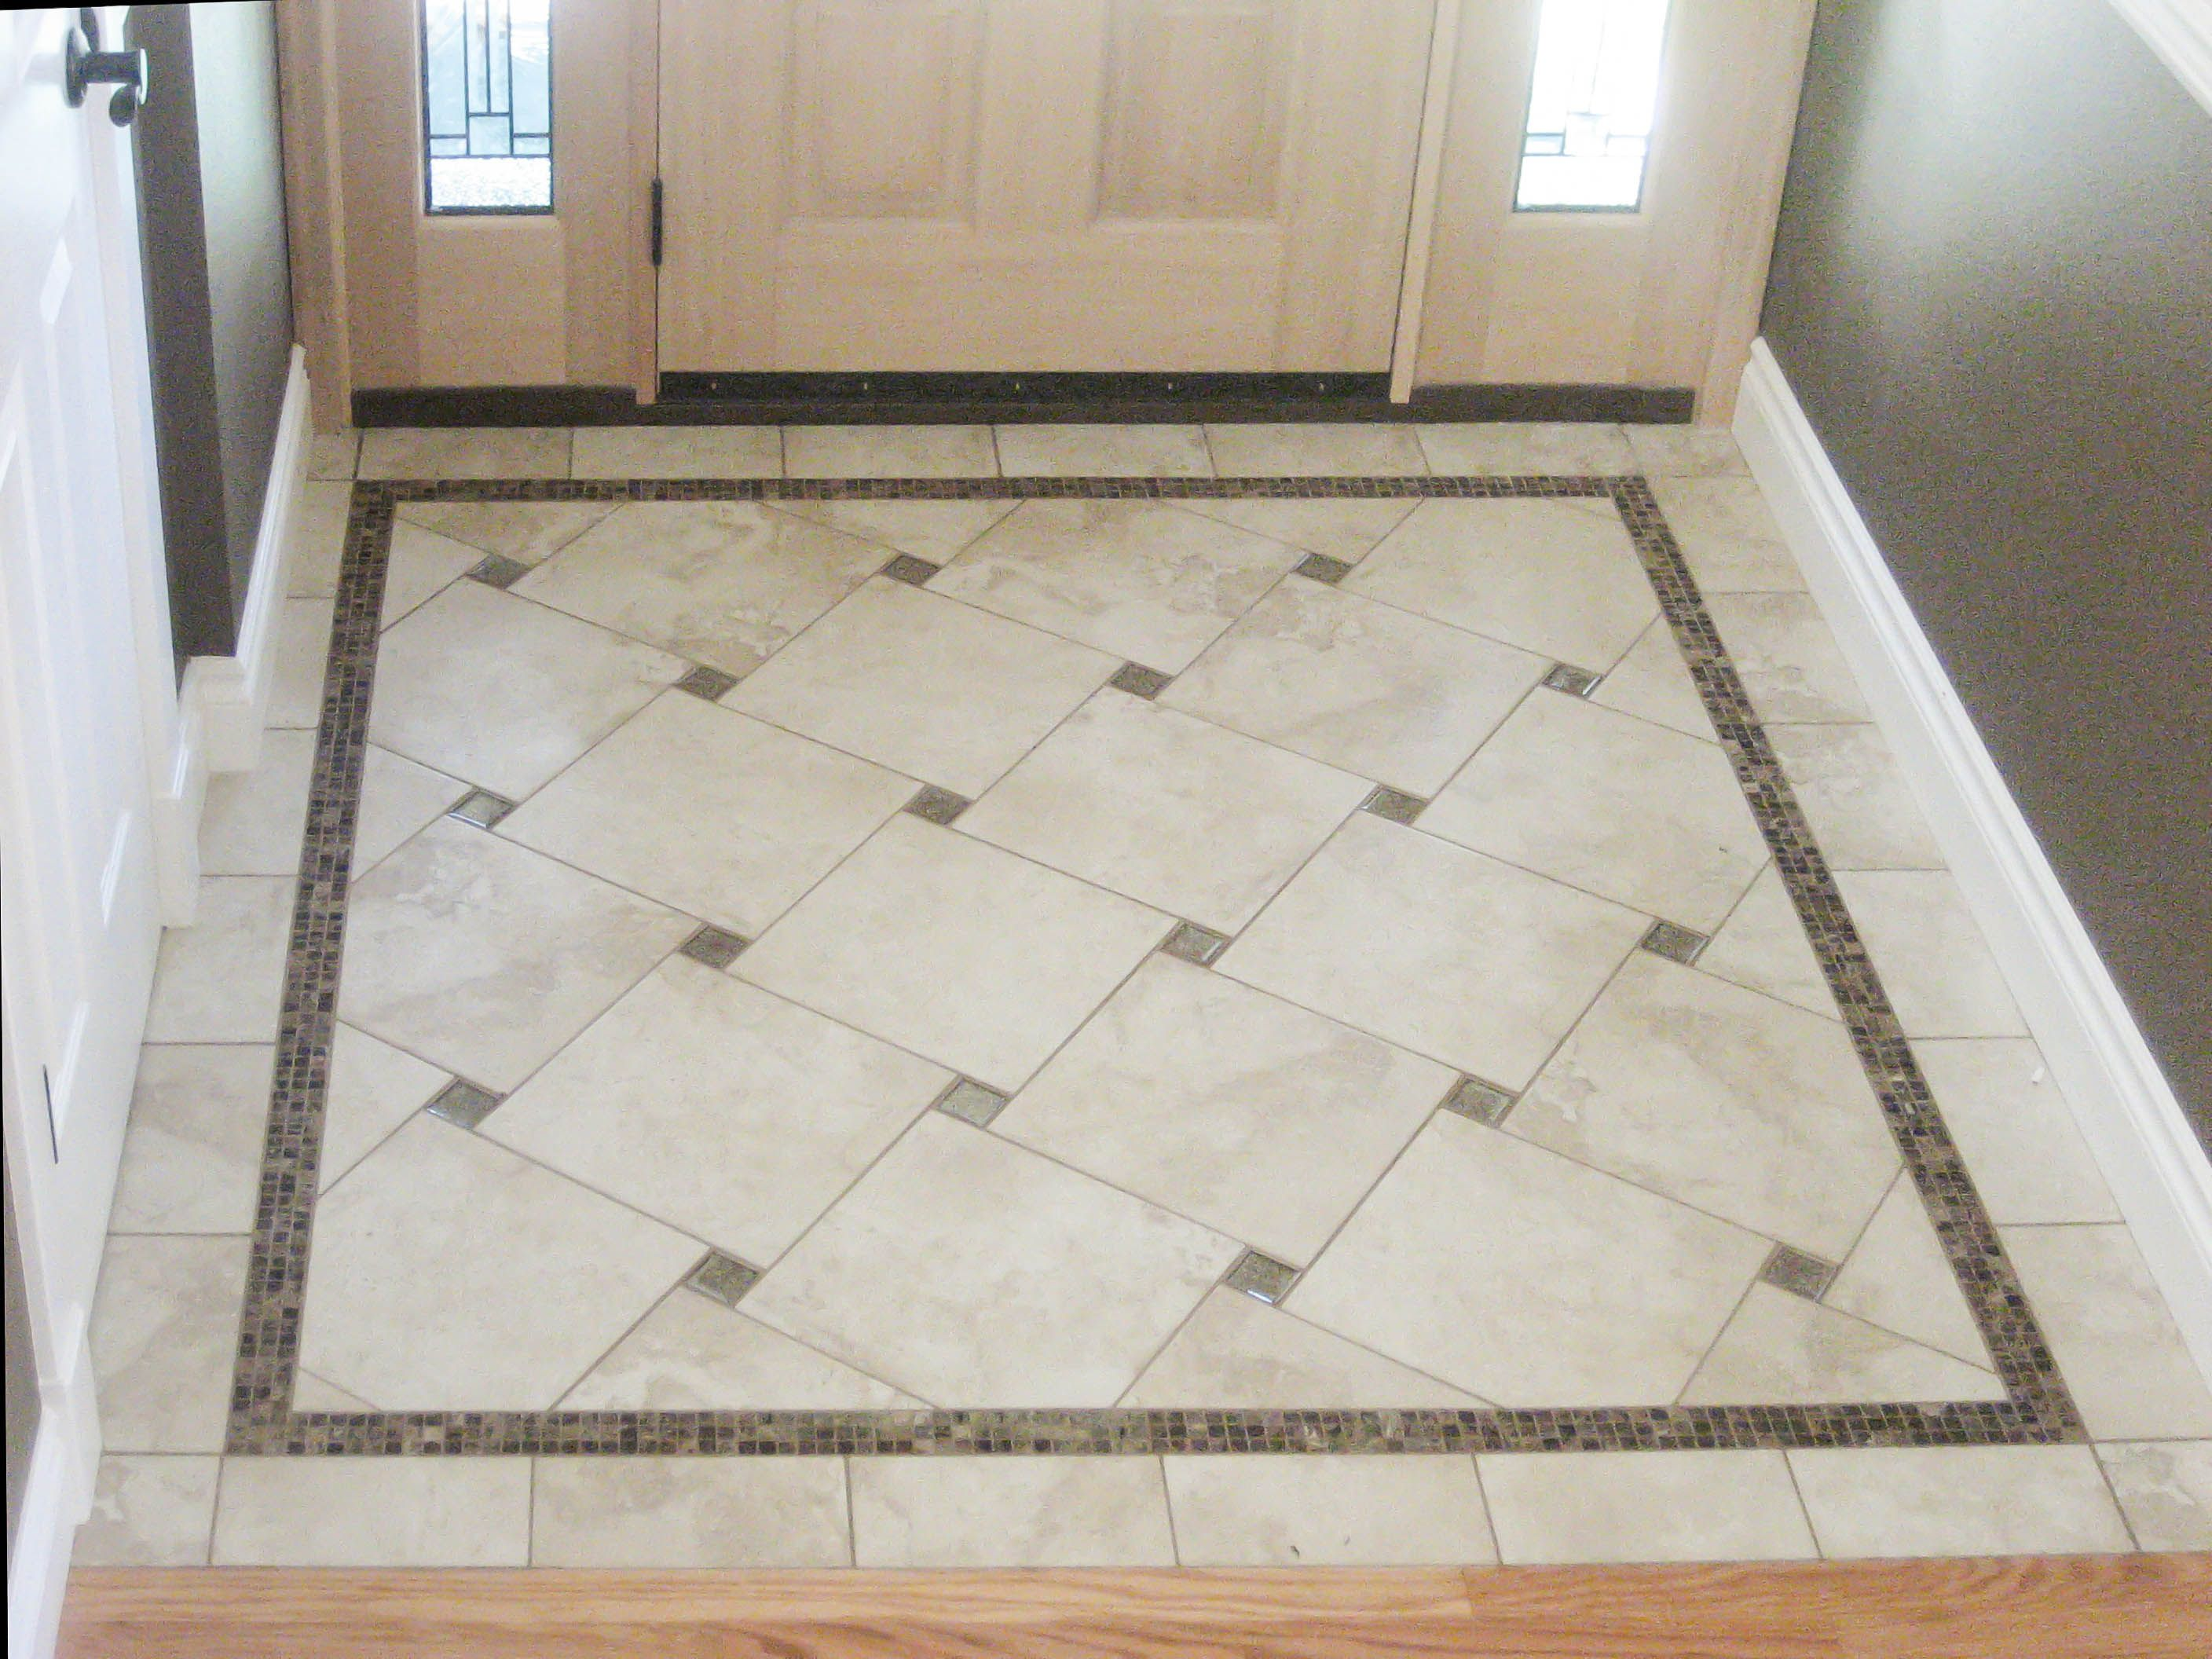 Recommended bathroom flooring - Entry Floor Tile Ideas Entry Floor Photos Gallery Seattle Tile Contractor Irc Tile